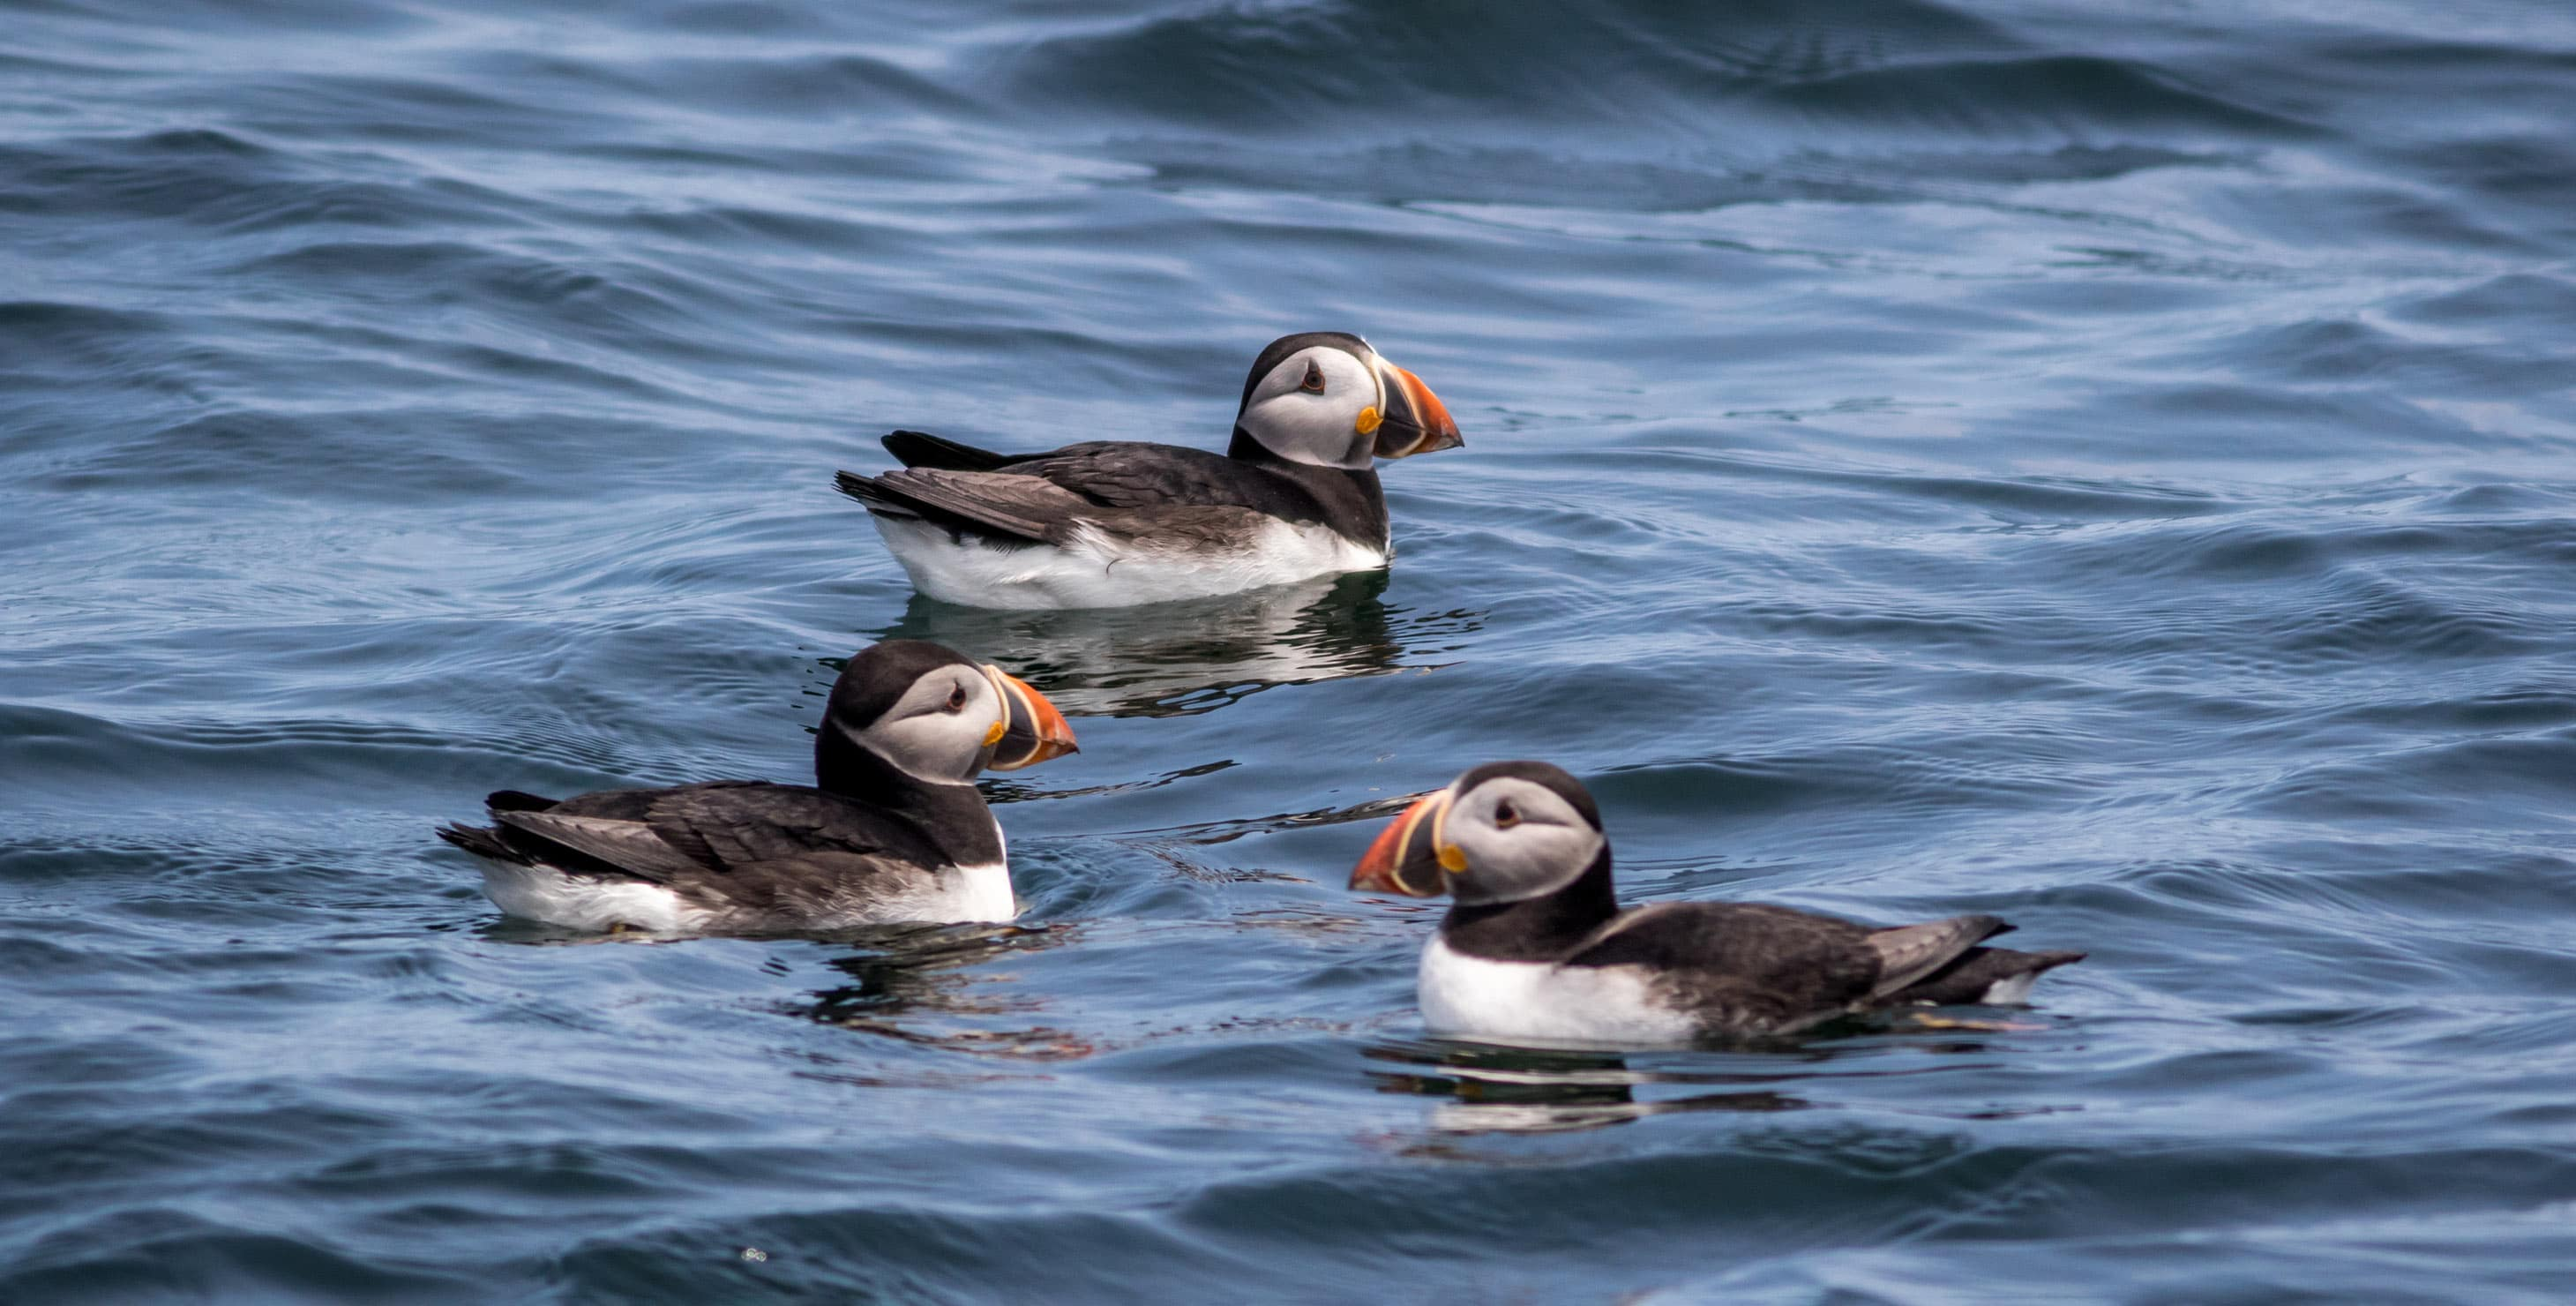 Puffins in Maine water